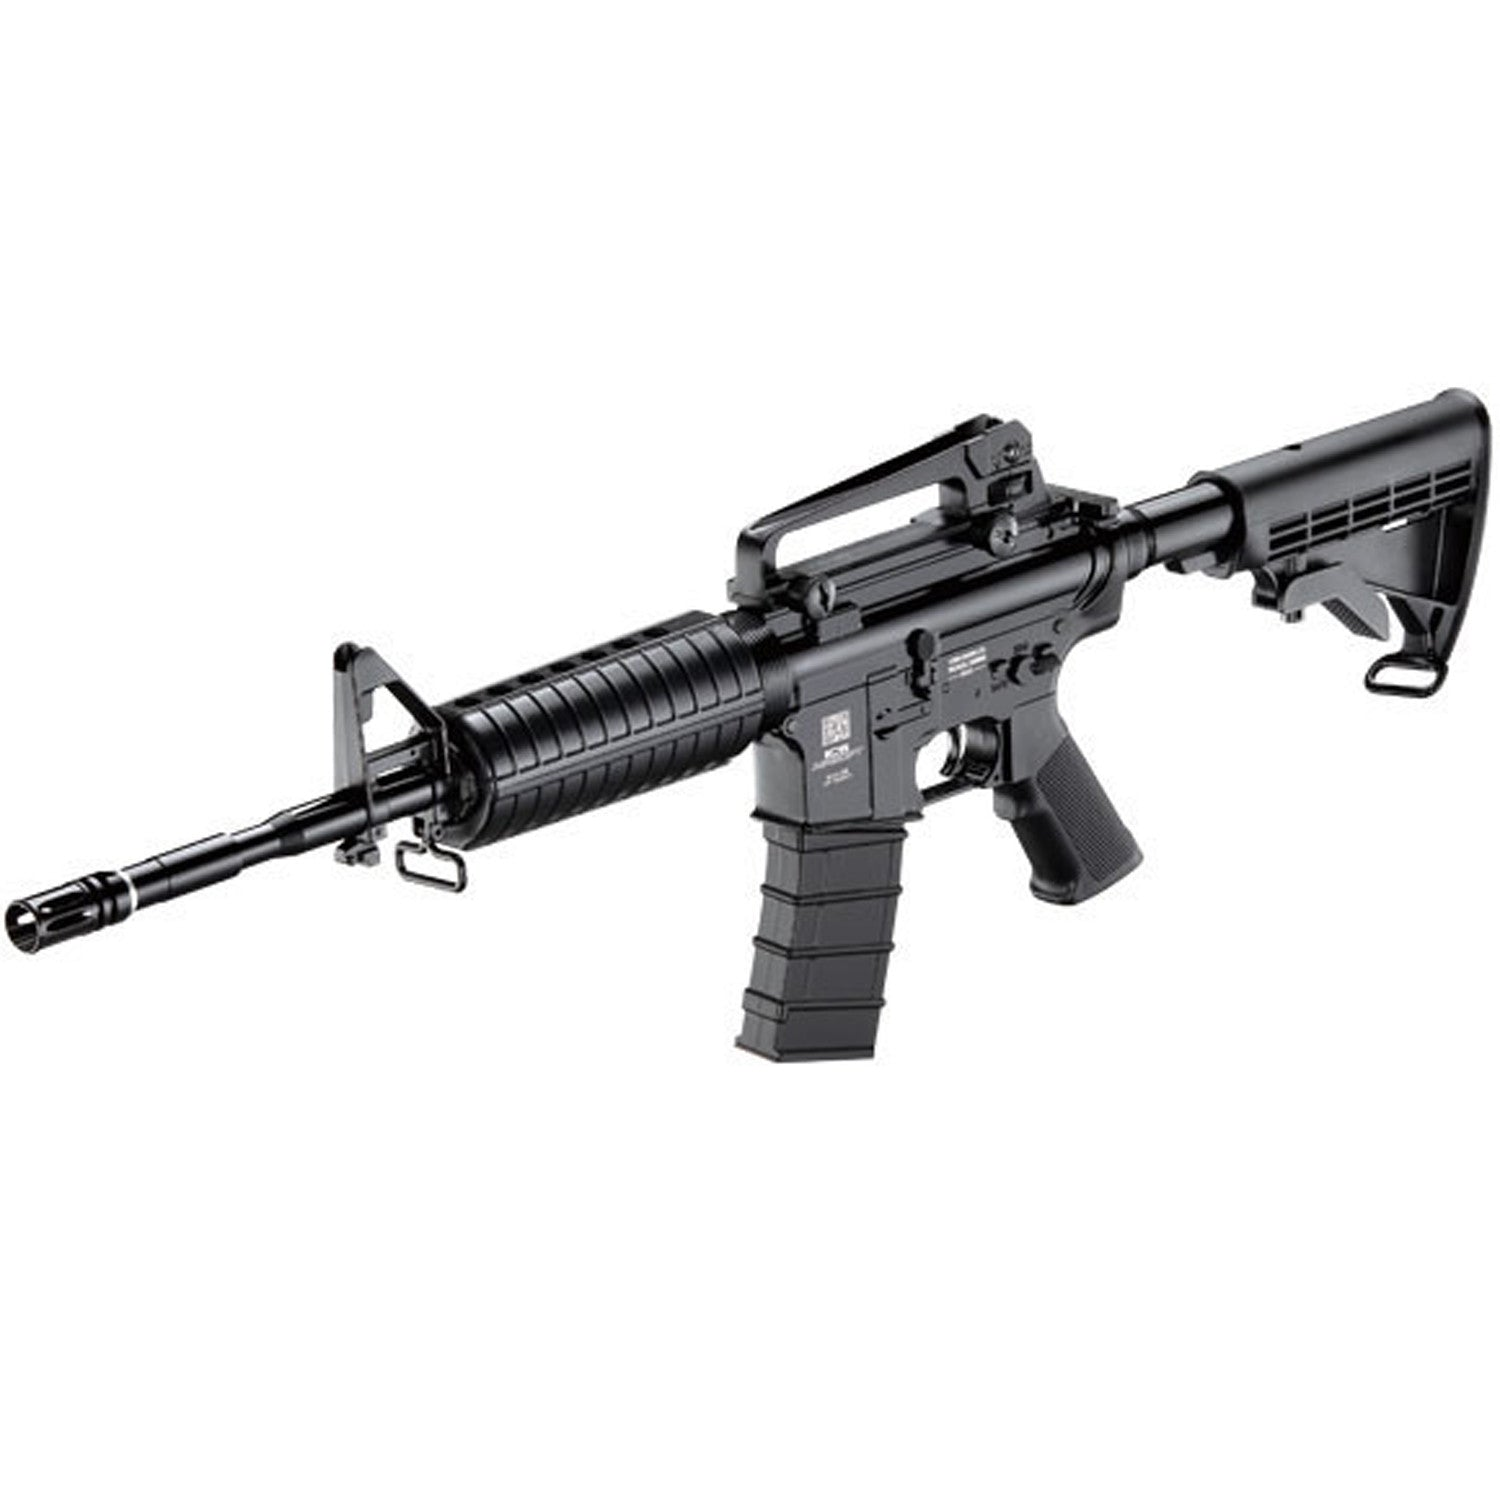 ICS M4 Full Metal - 305 fps (0.12 g BB) / Range 90-100 feet - Barrel Length: 15.5 inches / 39 cm - Magazine Capacity: 20 Rounds Features: - Round handguards - Hop Up - Carry Handle